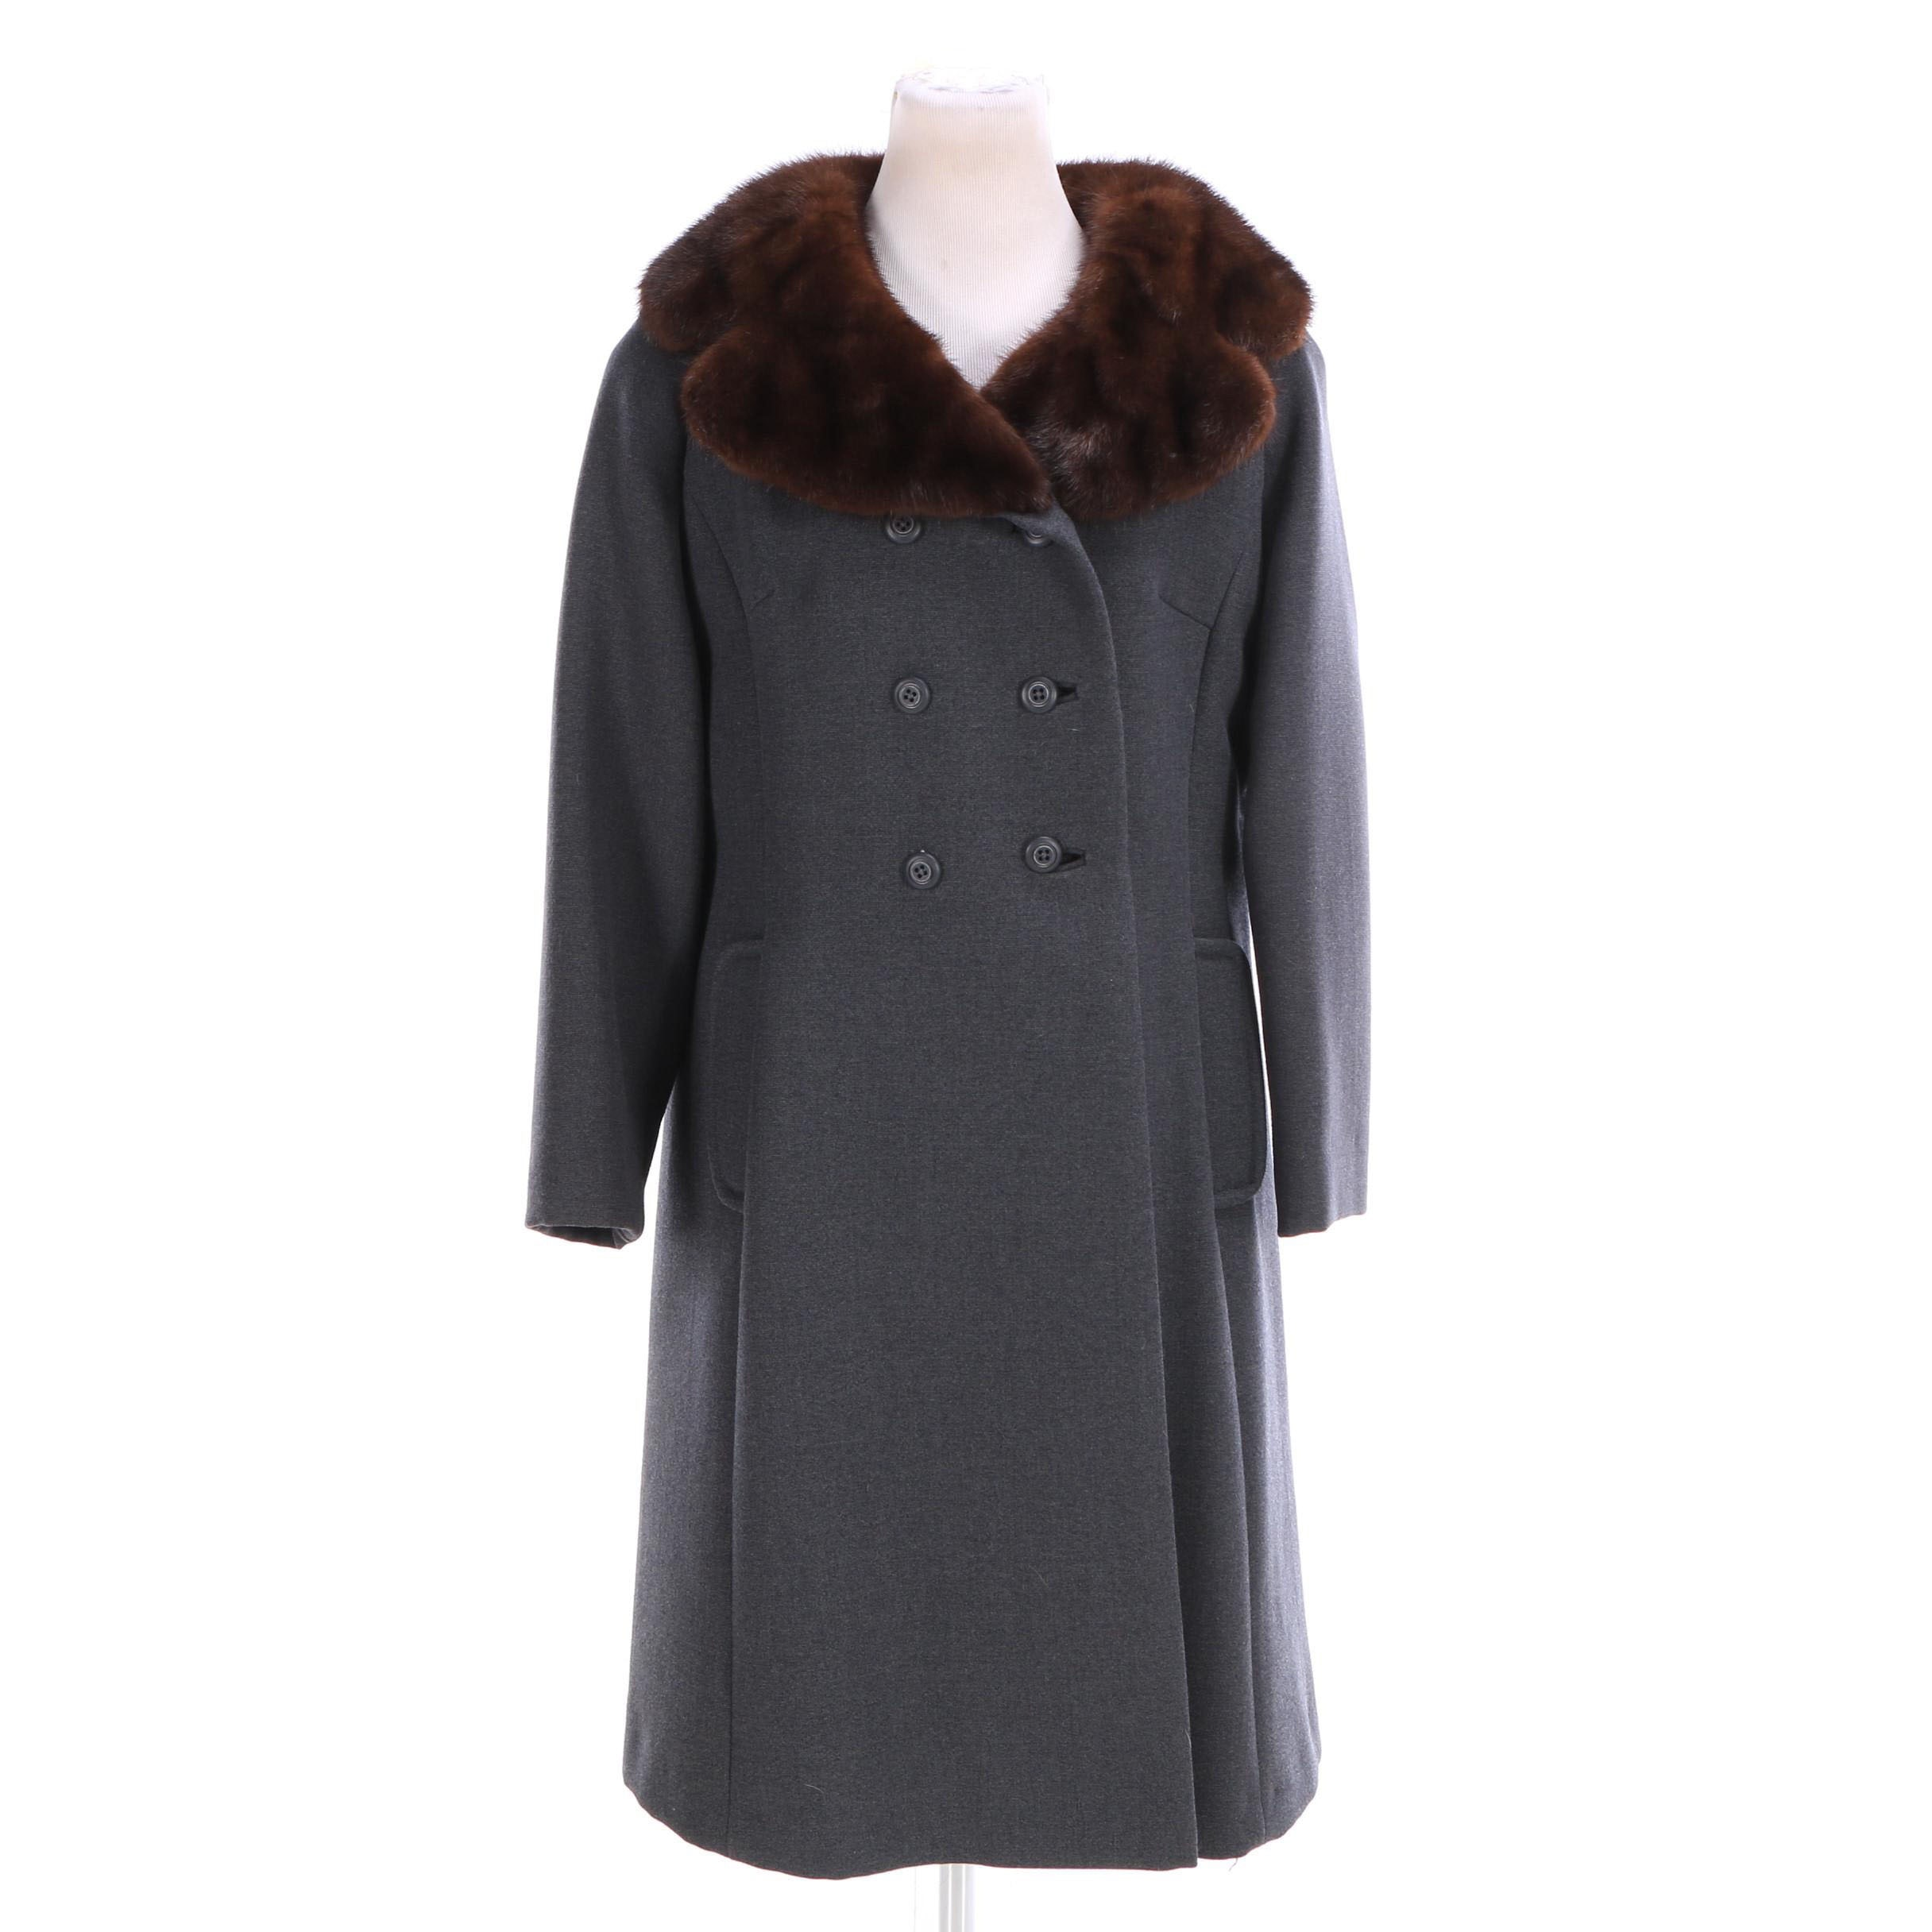 Women's Vintage Kaplowitz Wool Blend Coat with Mink Fur Collar